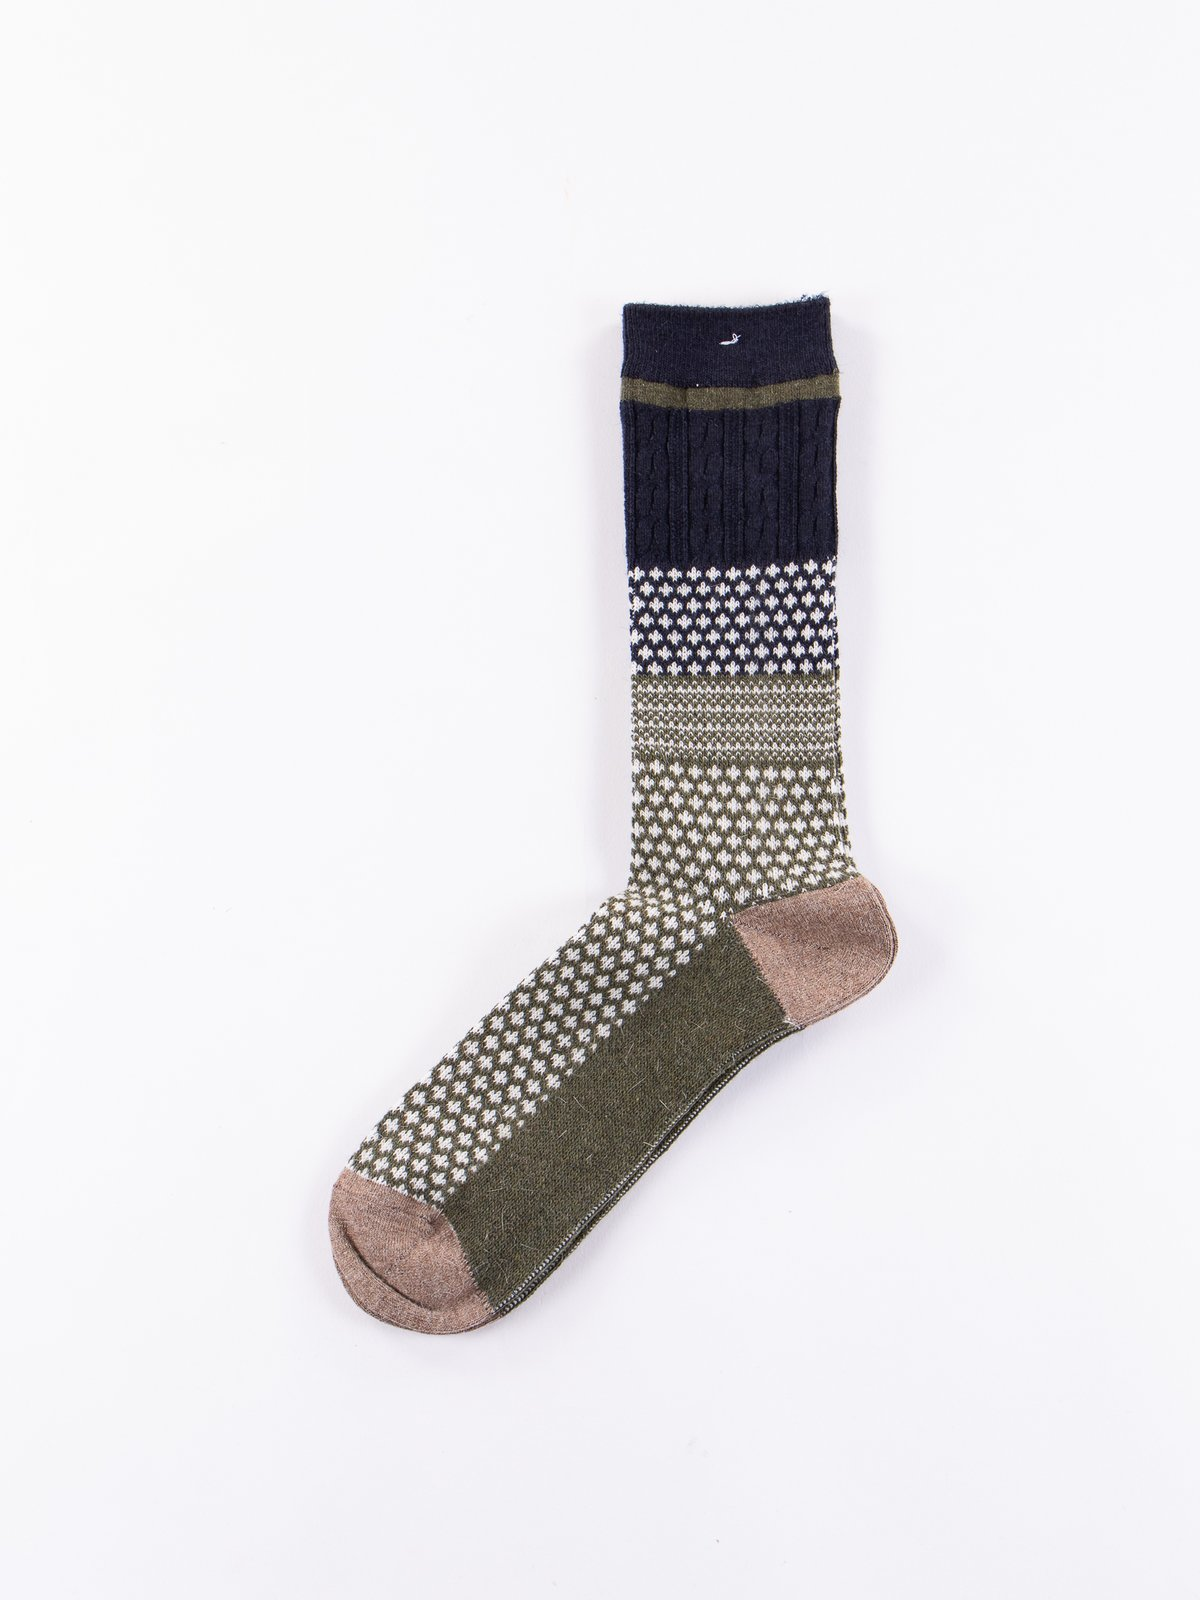 Moss/Navy Club Knit Socks - Image 1